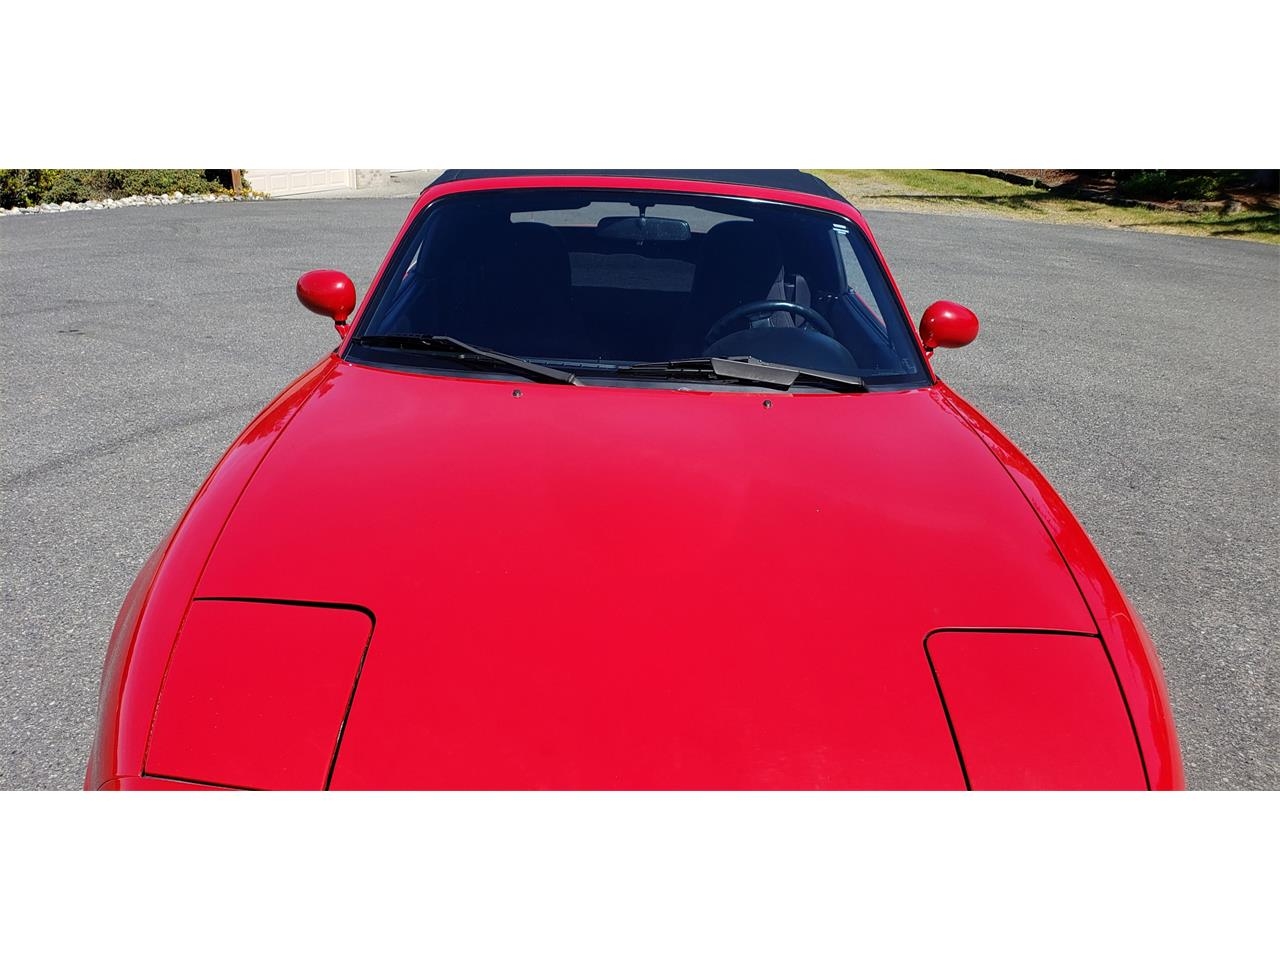 1991 Mazda Miata for sale in Camano Island, WA – photo 7